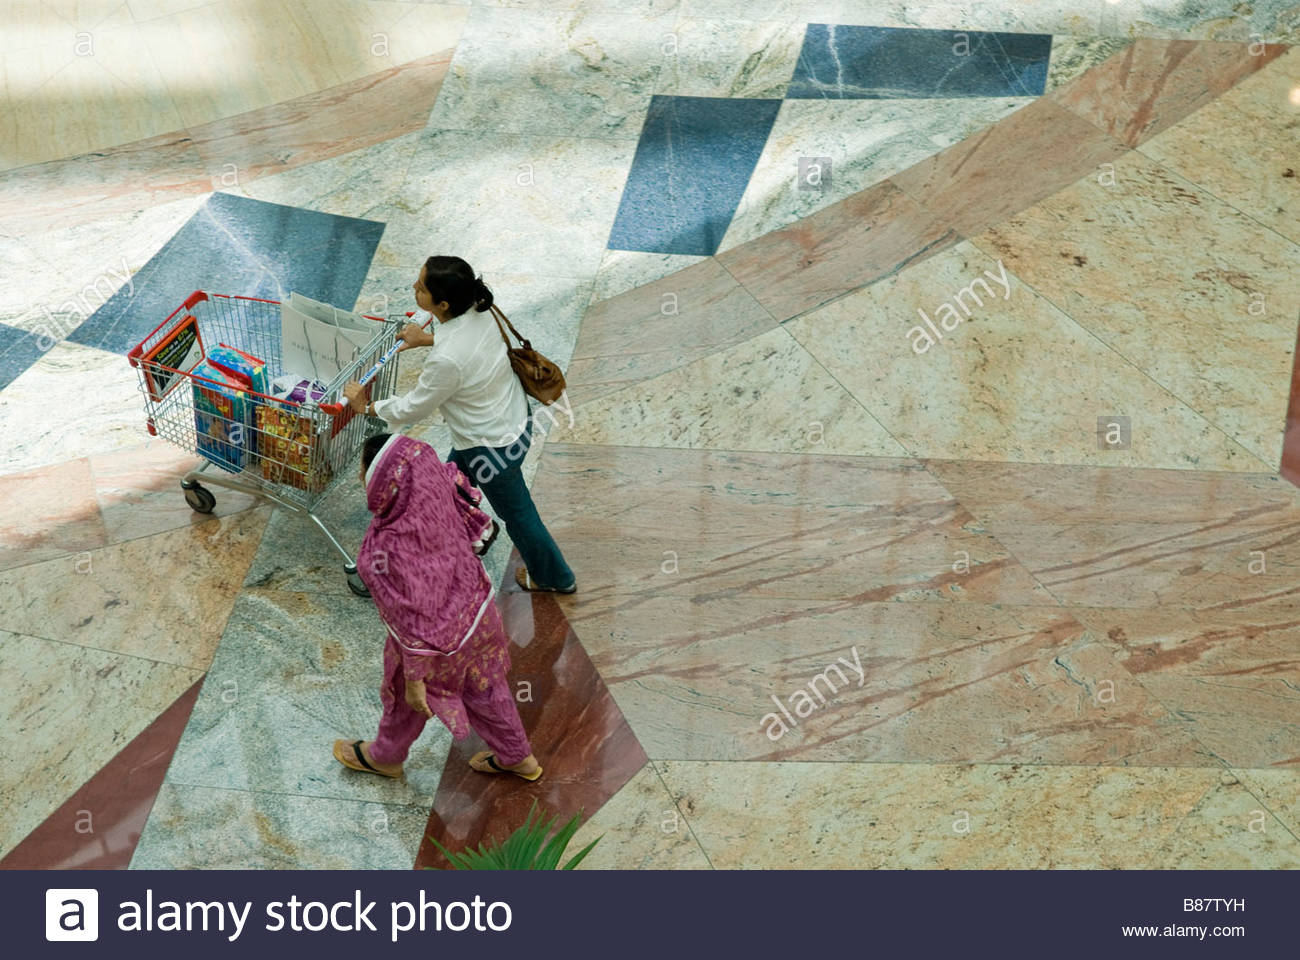 Dubai UAE- Mall of the emirates, - Stock Image